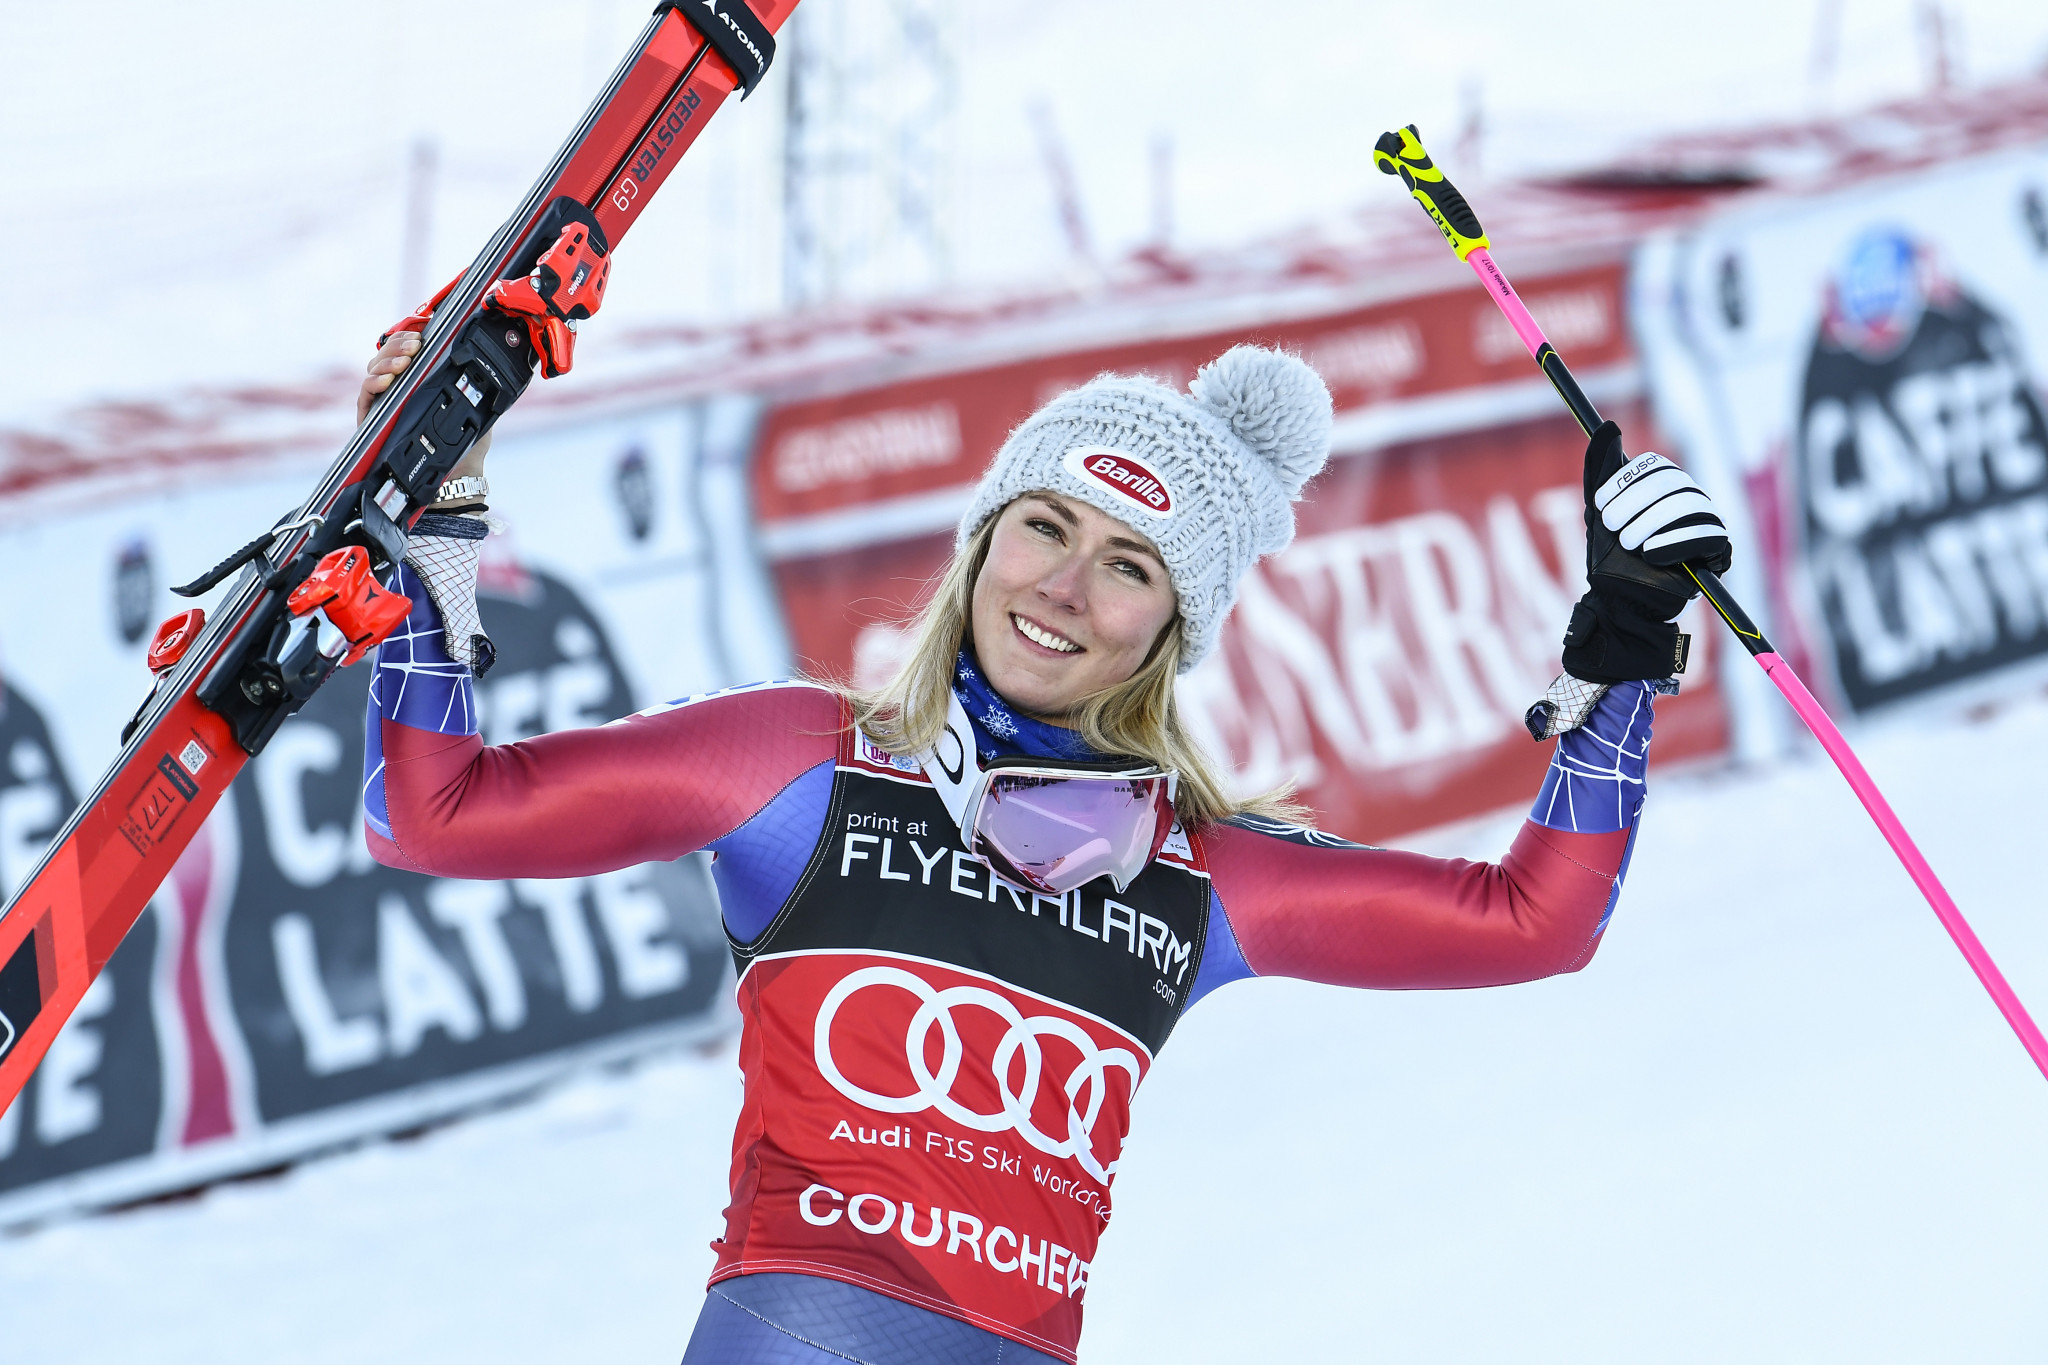 Shiffrin wins giant slalom at FIS Alpine Skiing World Cup